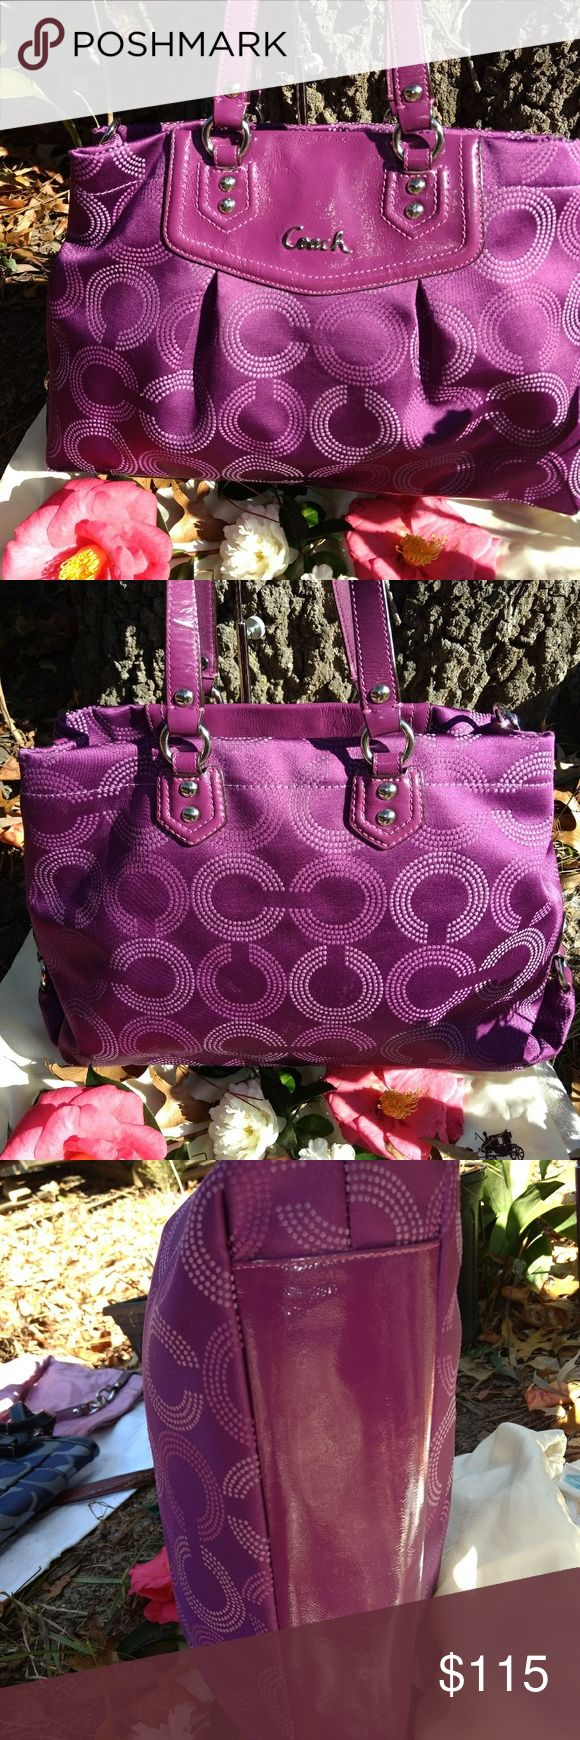 💗Coach 💗Ashley Dotted Opt Art Satchel Coach Ashley Satchel Guaranteed Coach Authentic ☆Polished tone hardware ☆2 inside Multifunction's Slip Pockets ☆One inside Zippered pocket           ☆Two main compartments with magnetic snap closure & one middle zipper compartment ☆Coach Leather hang tag ☆Interior solid lining  ☆In excellent condition (2 small blk spots inside, see pics) ☆Approx: 15 3/4 (L)x10 1/2(H)x 3 1/2(D) ☆Double strap leather handles ☆Detachable Crossbody strap Missing…